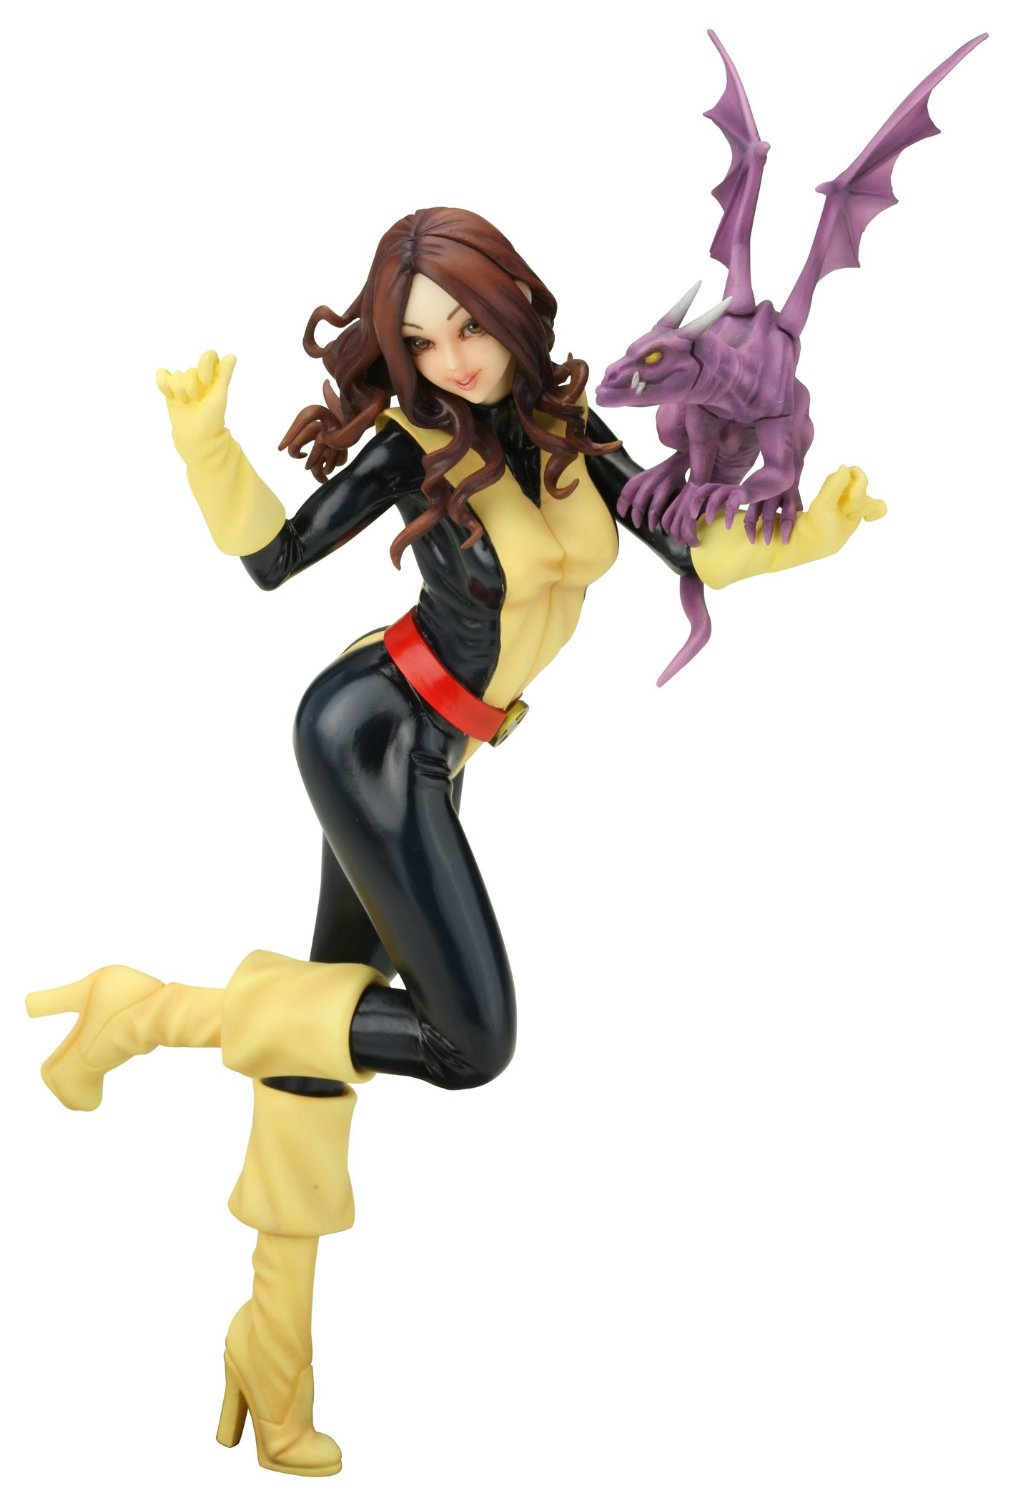 kitty-pryde-x-men-marvel-bishoujo-statue-kotobukiya-1